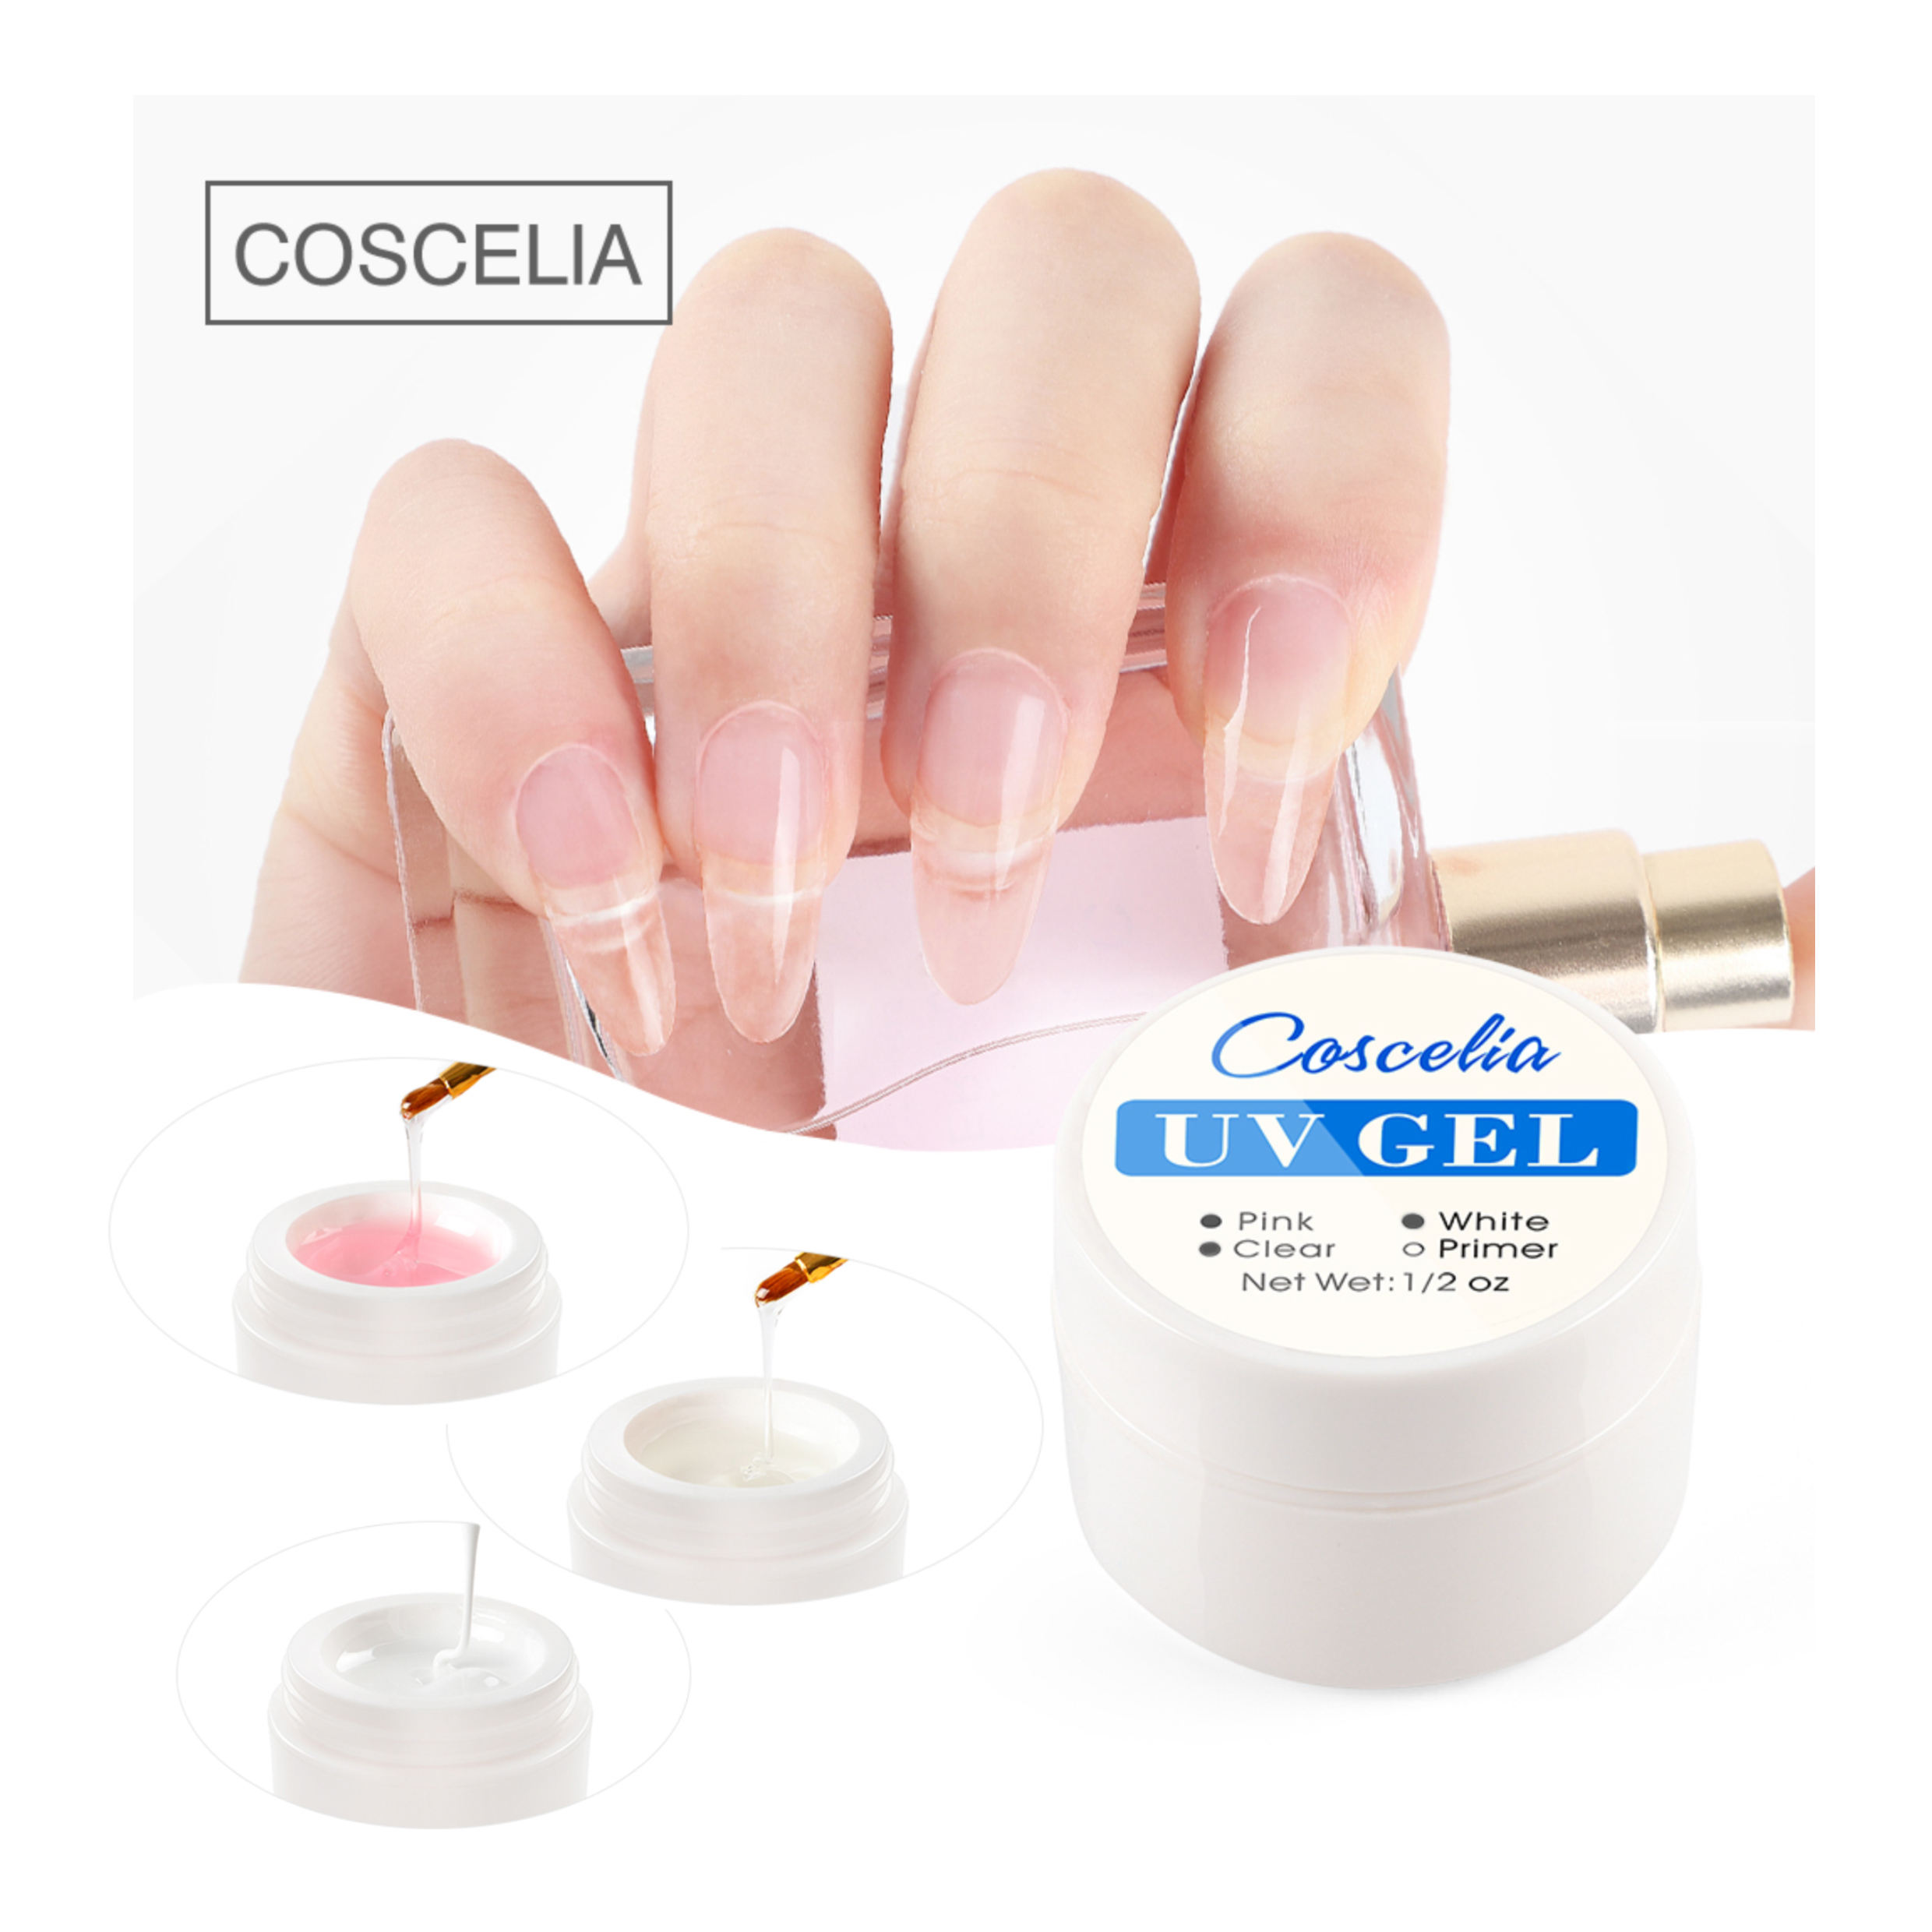 COSCELIA Long Lasting UV Gel Clear Pink Builder Gel Nails